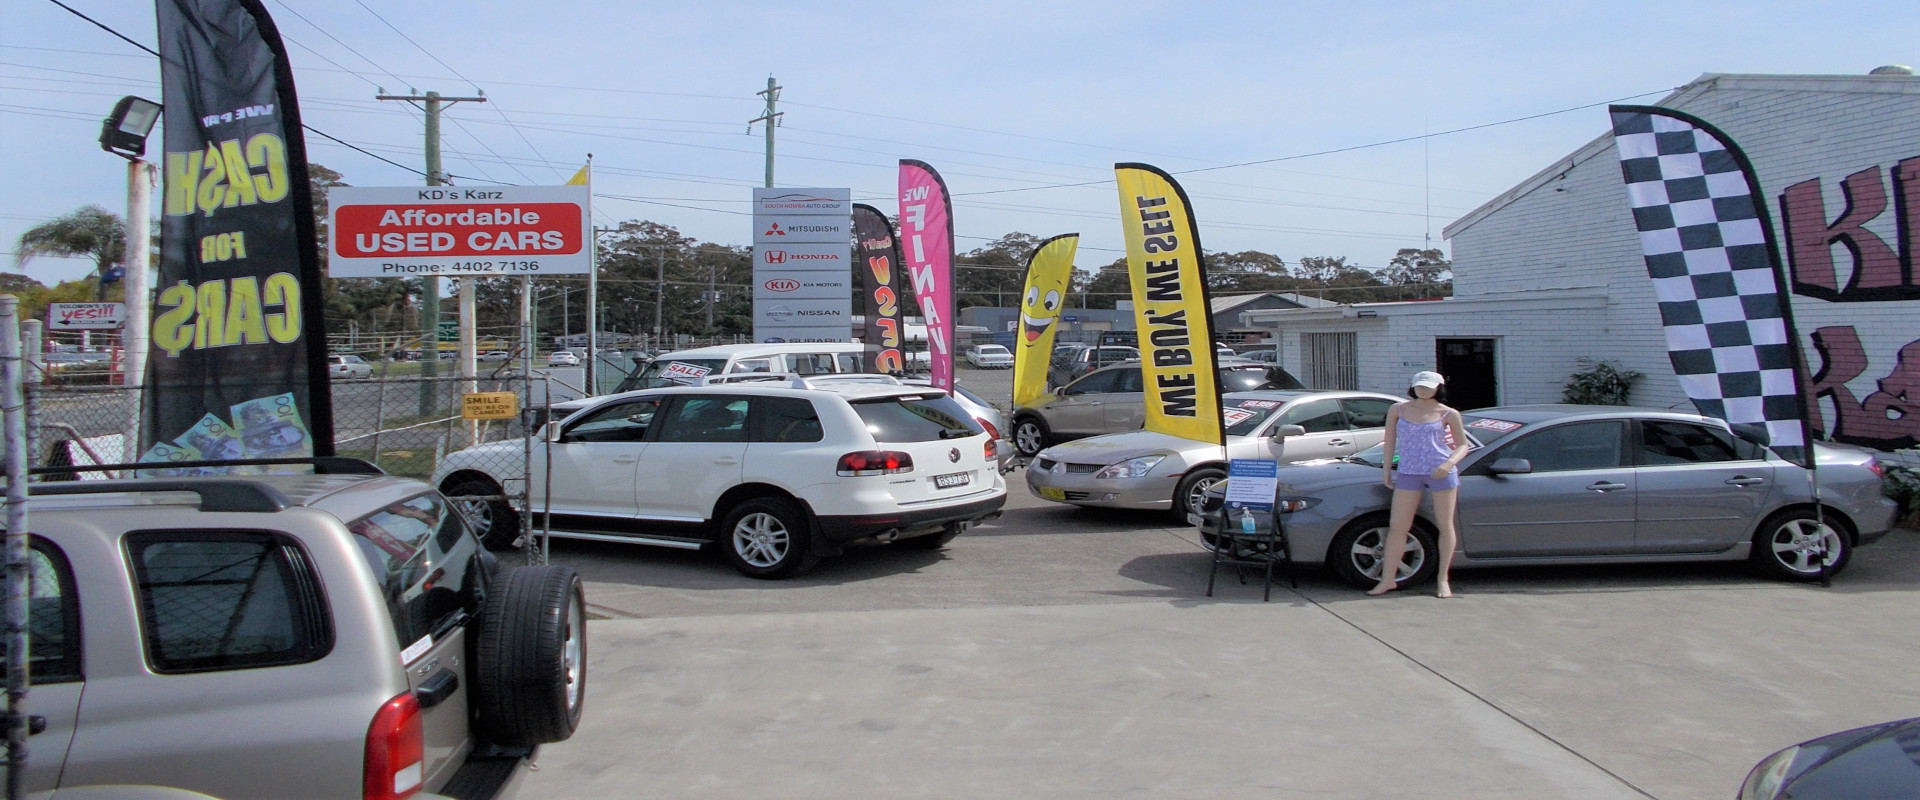 KD'S Karz offer quality and affordable used vehicles